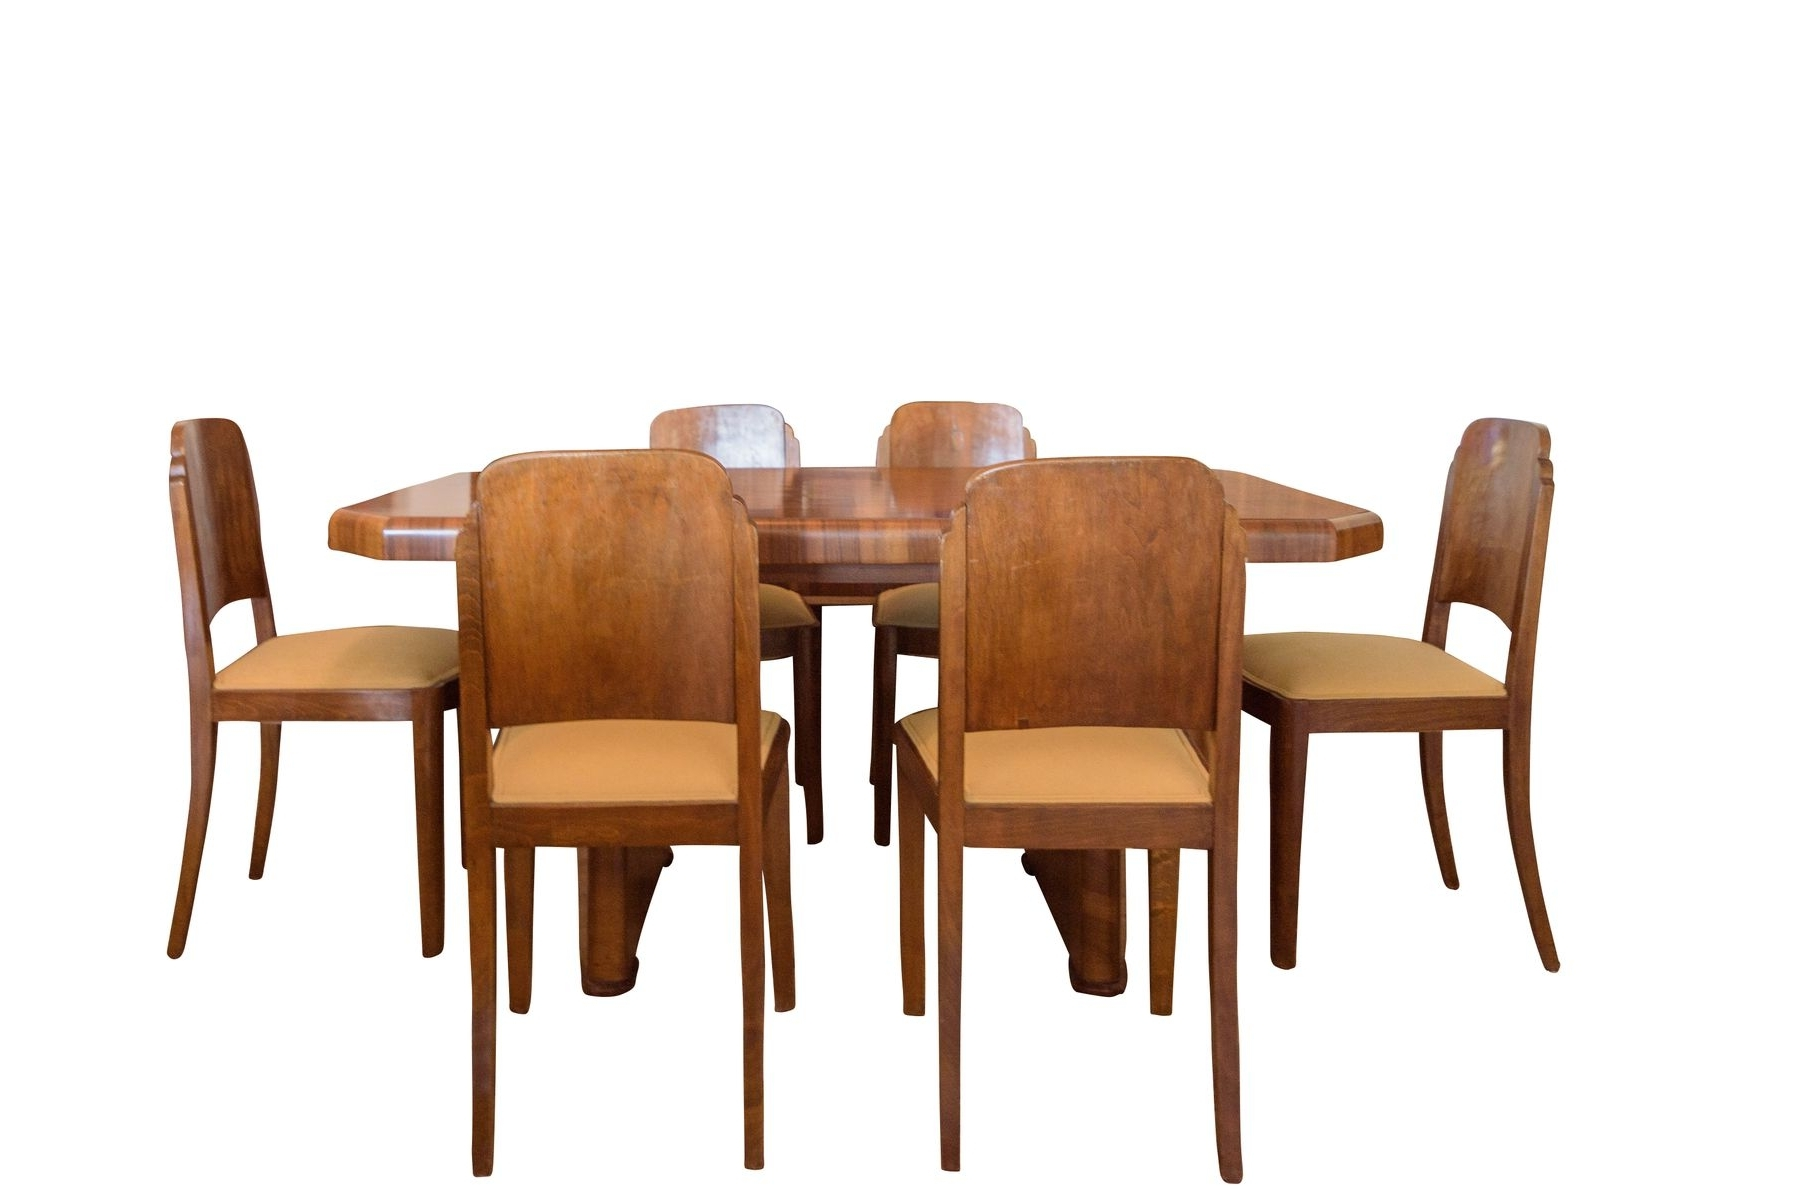 Latest Art Deco Walnut Dining Table & 6 Chairs, 1920S For Sale At Pamono Intended For Walnut Dining Table And 6 Chairs (View 12 of 25)